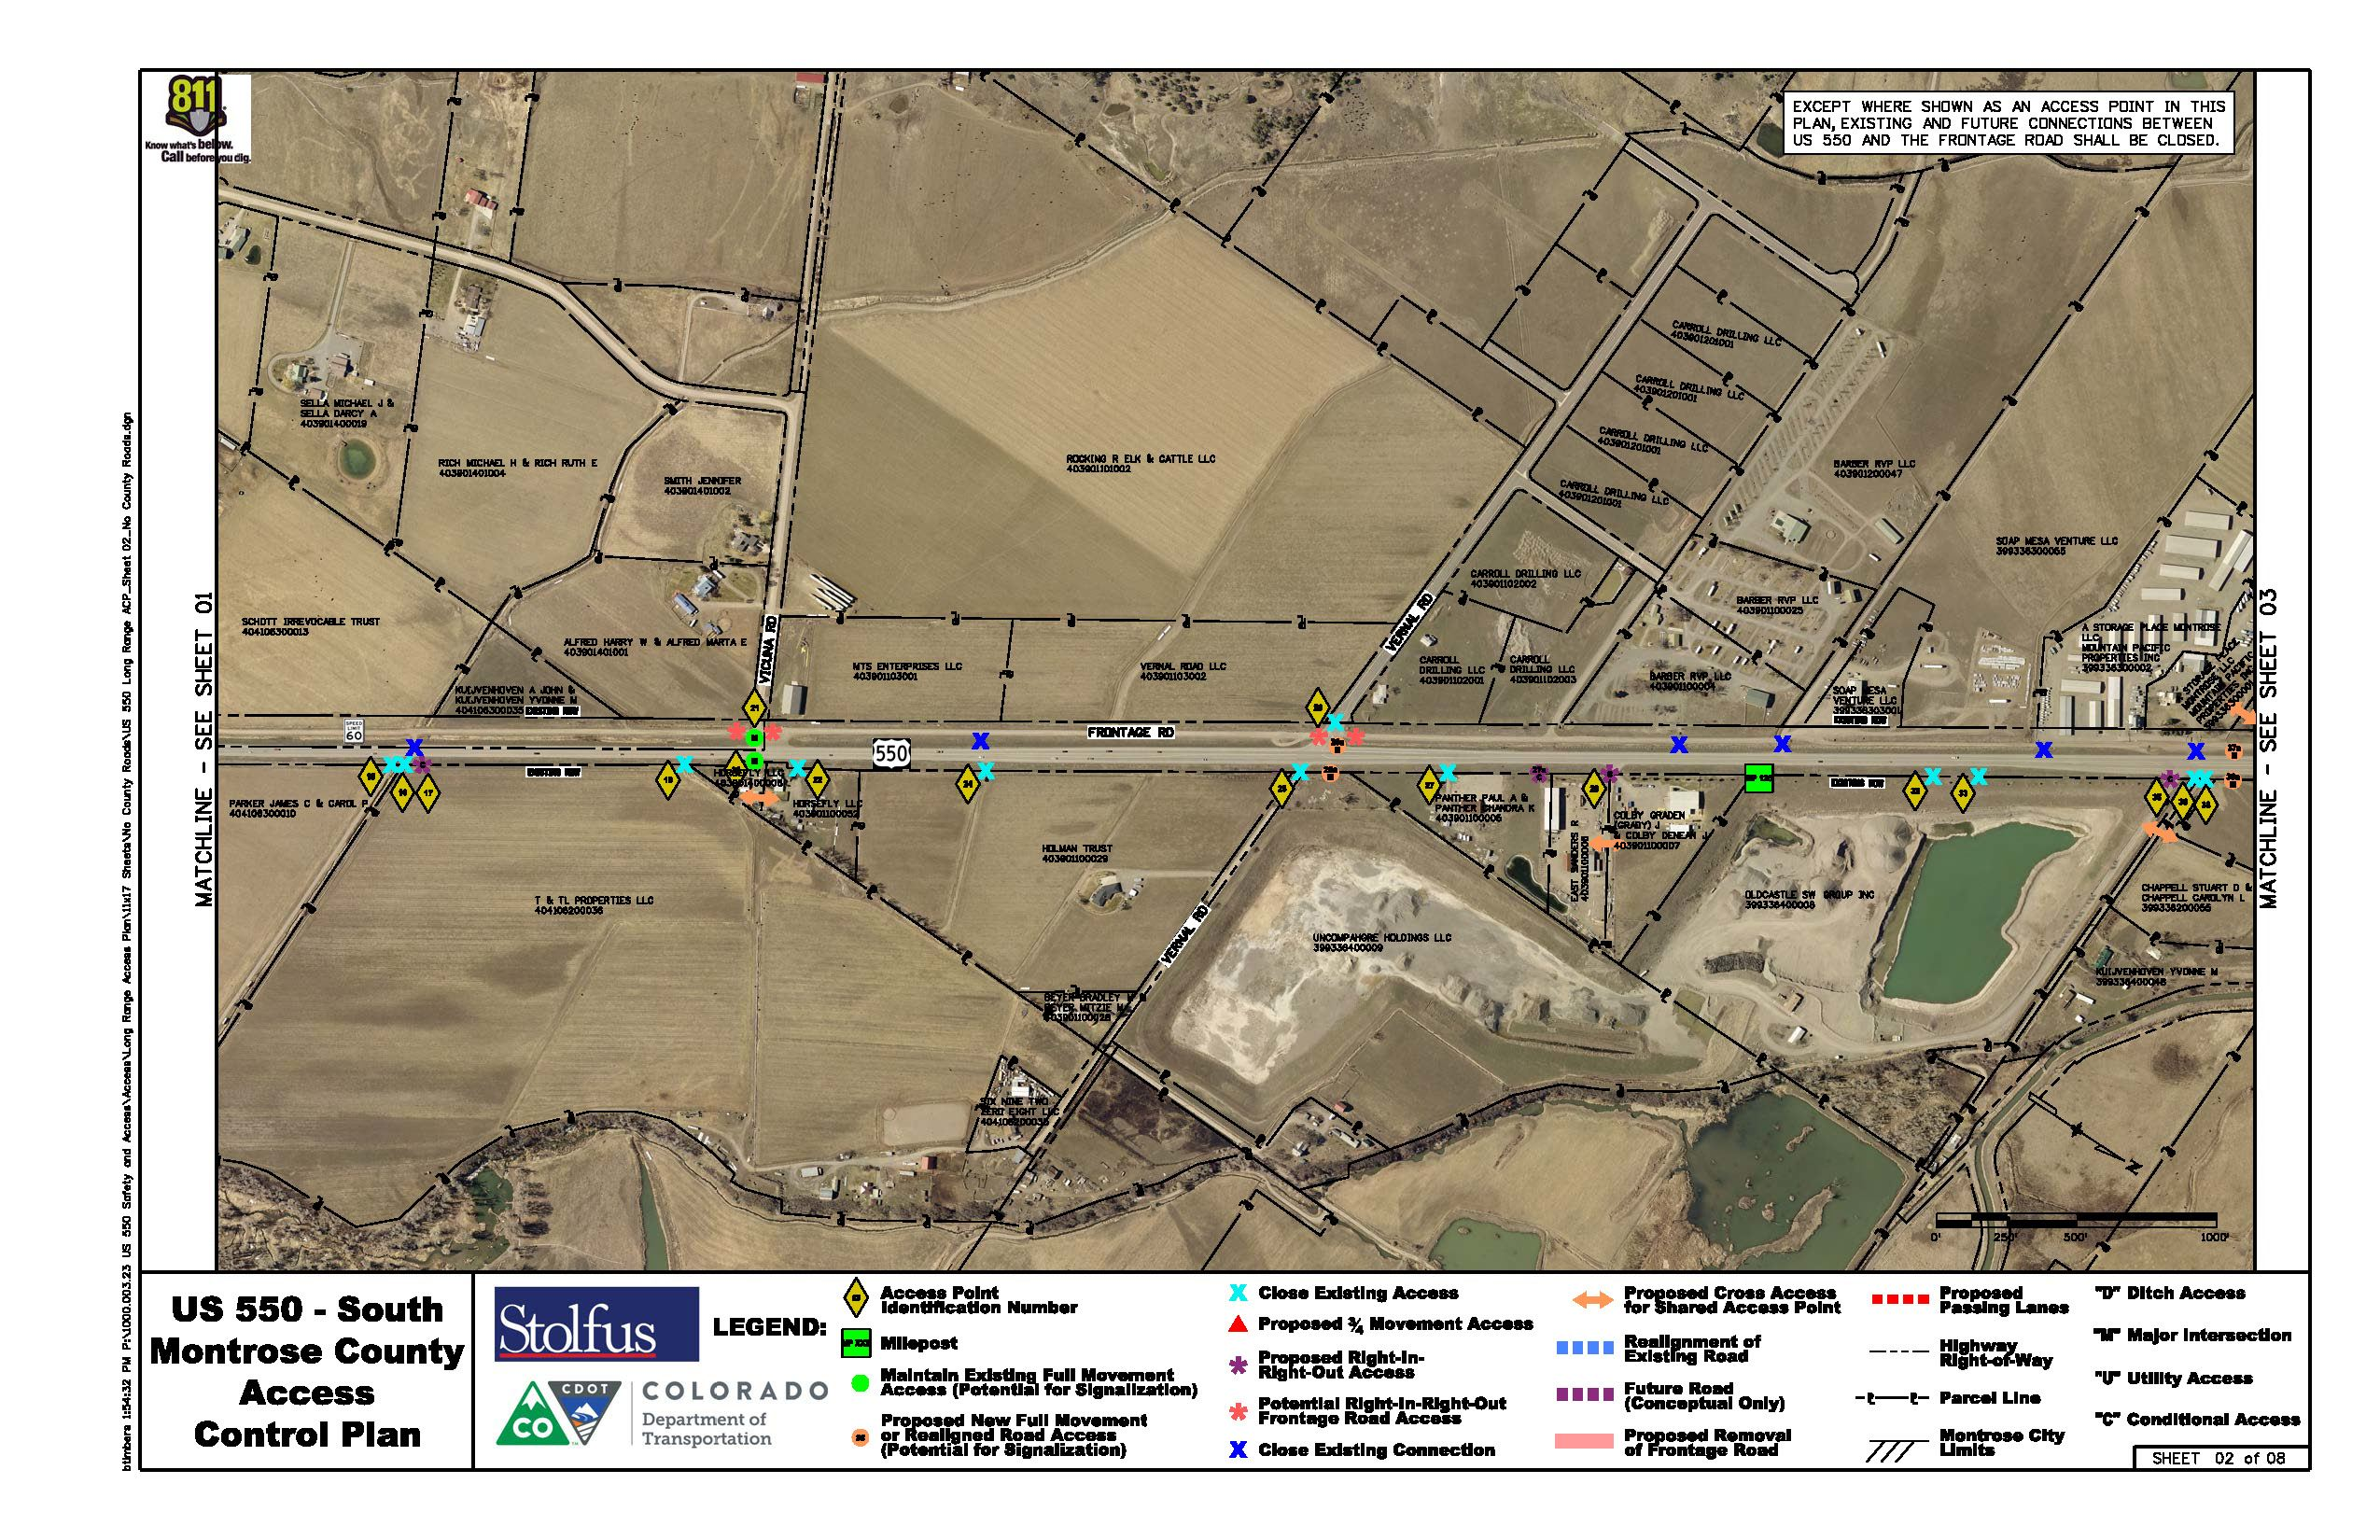 US 550 South Montrose County ACP 5.3.19_Page_2